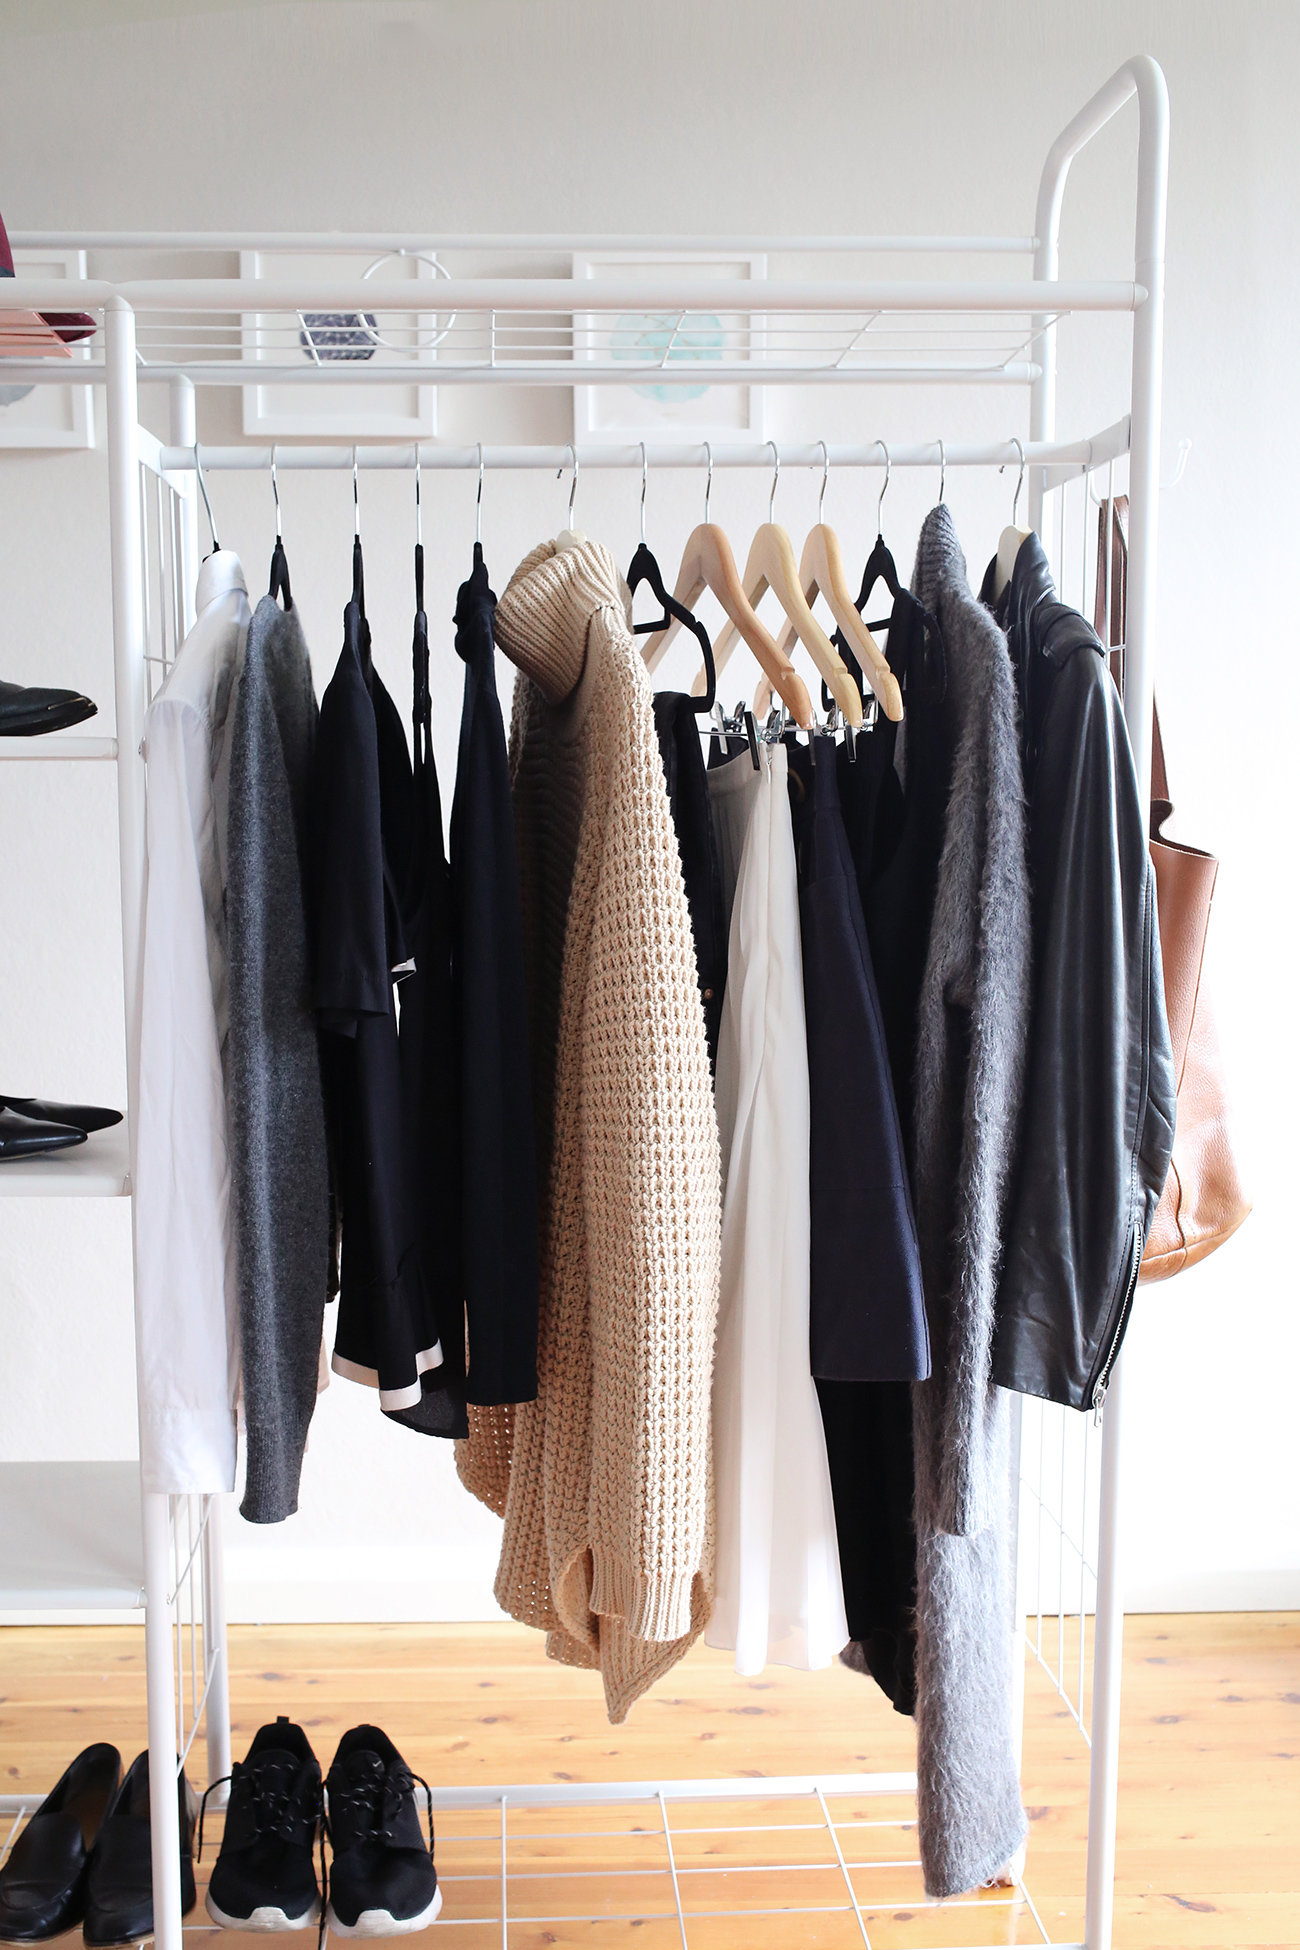 why build a minimal capsule wardrobe